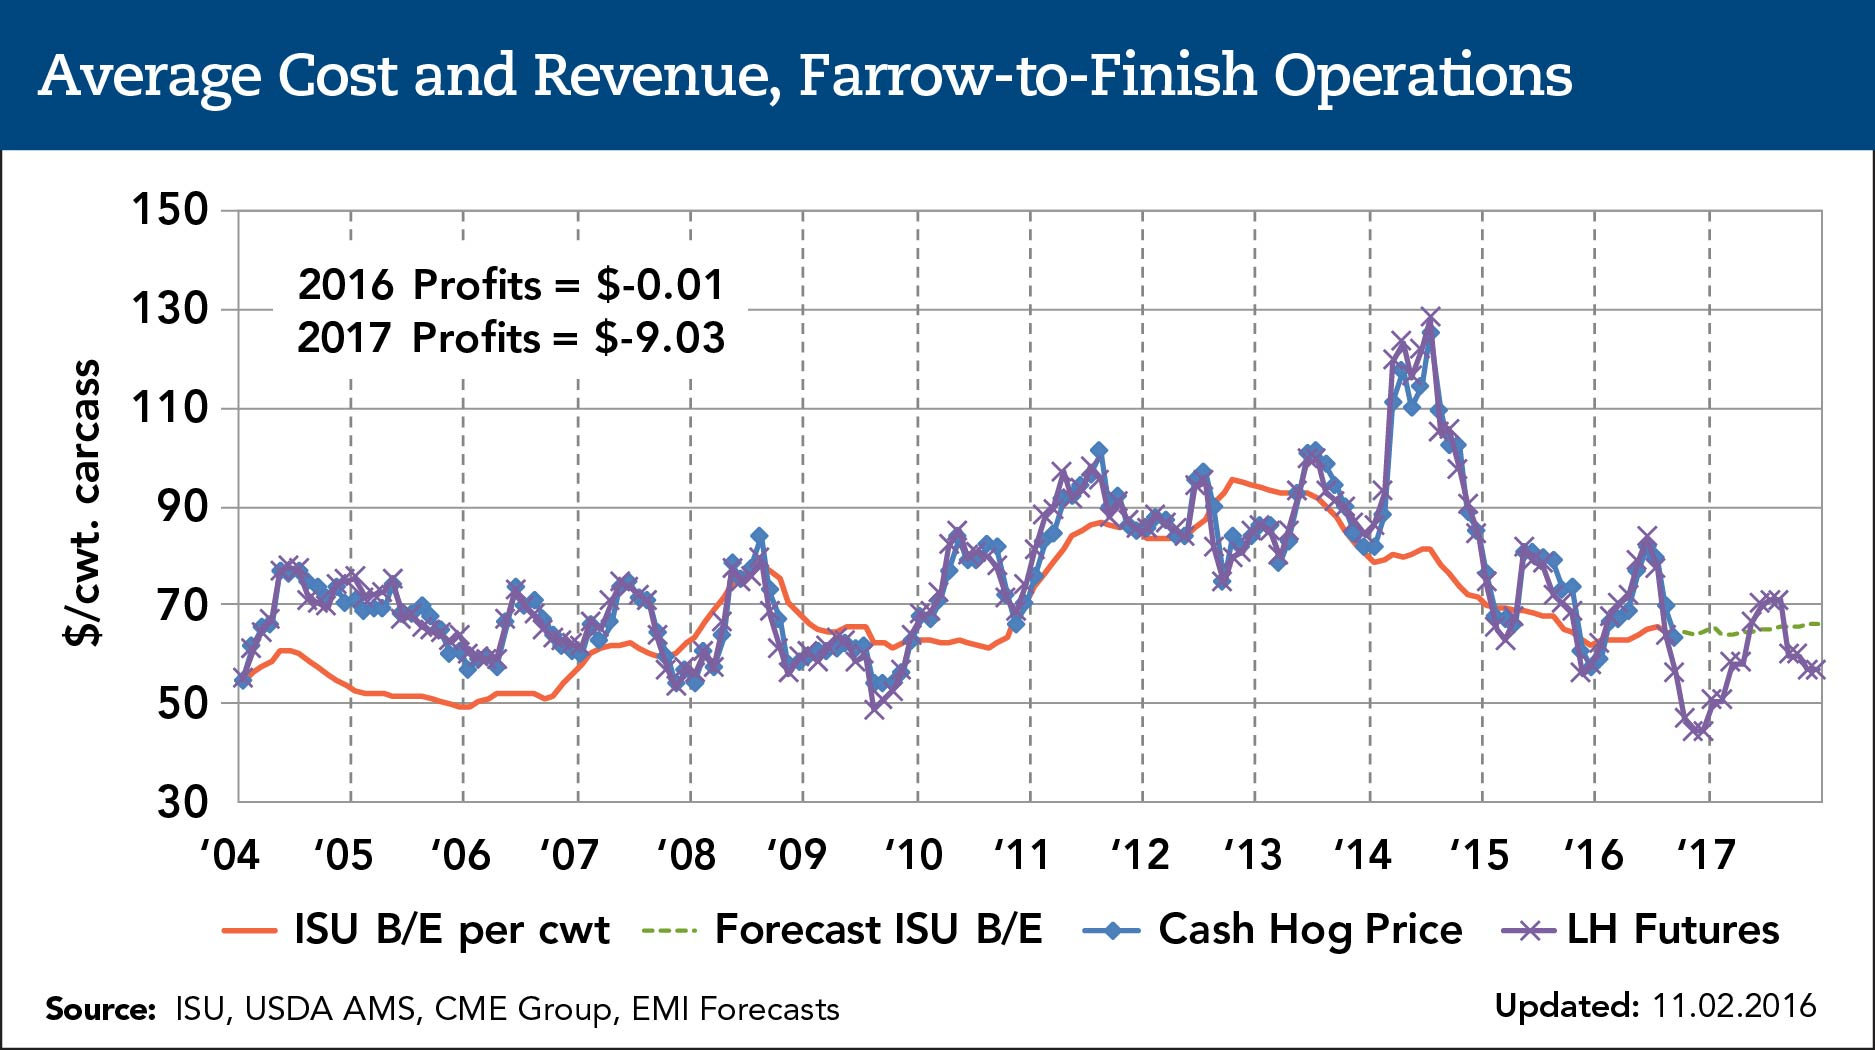 average cost and revenue farrow-to-finish operation